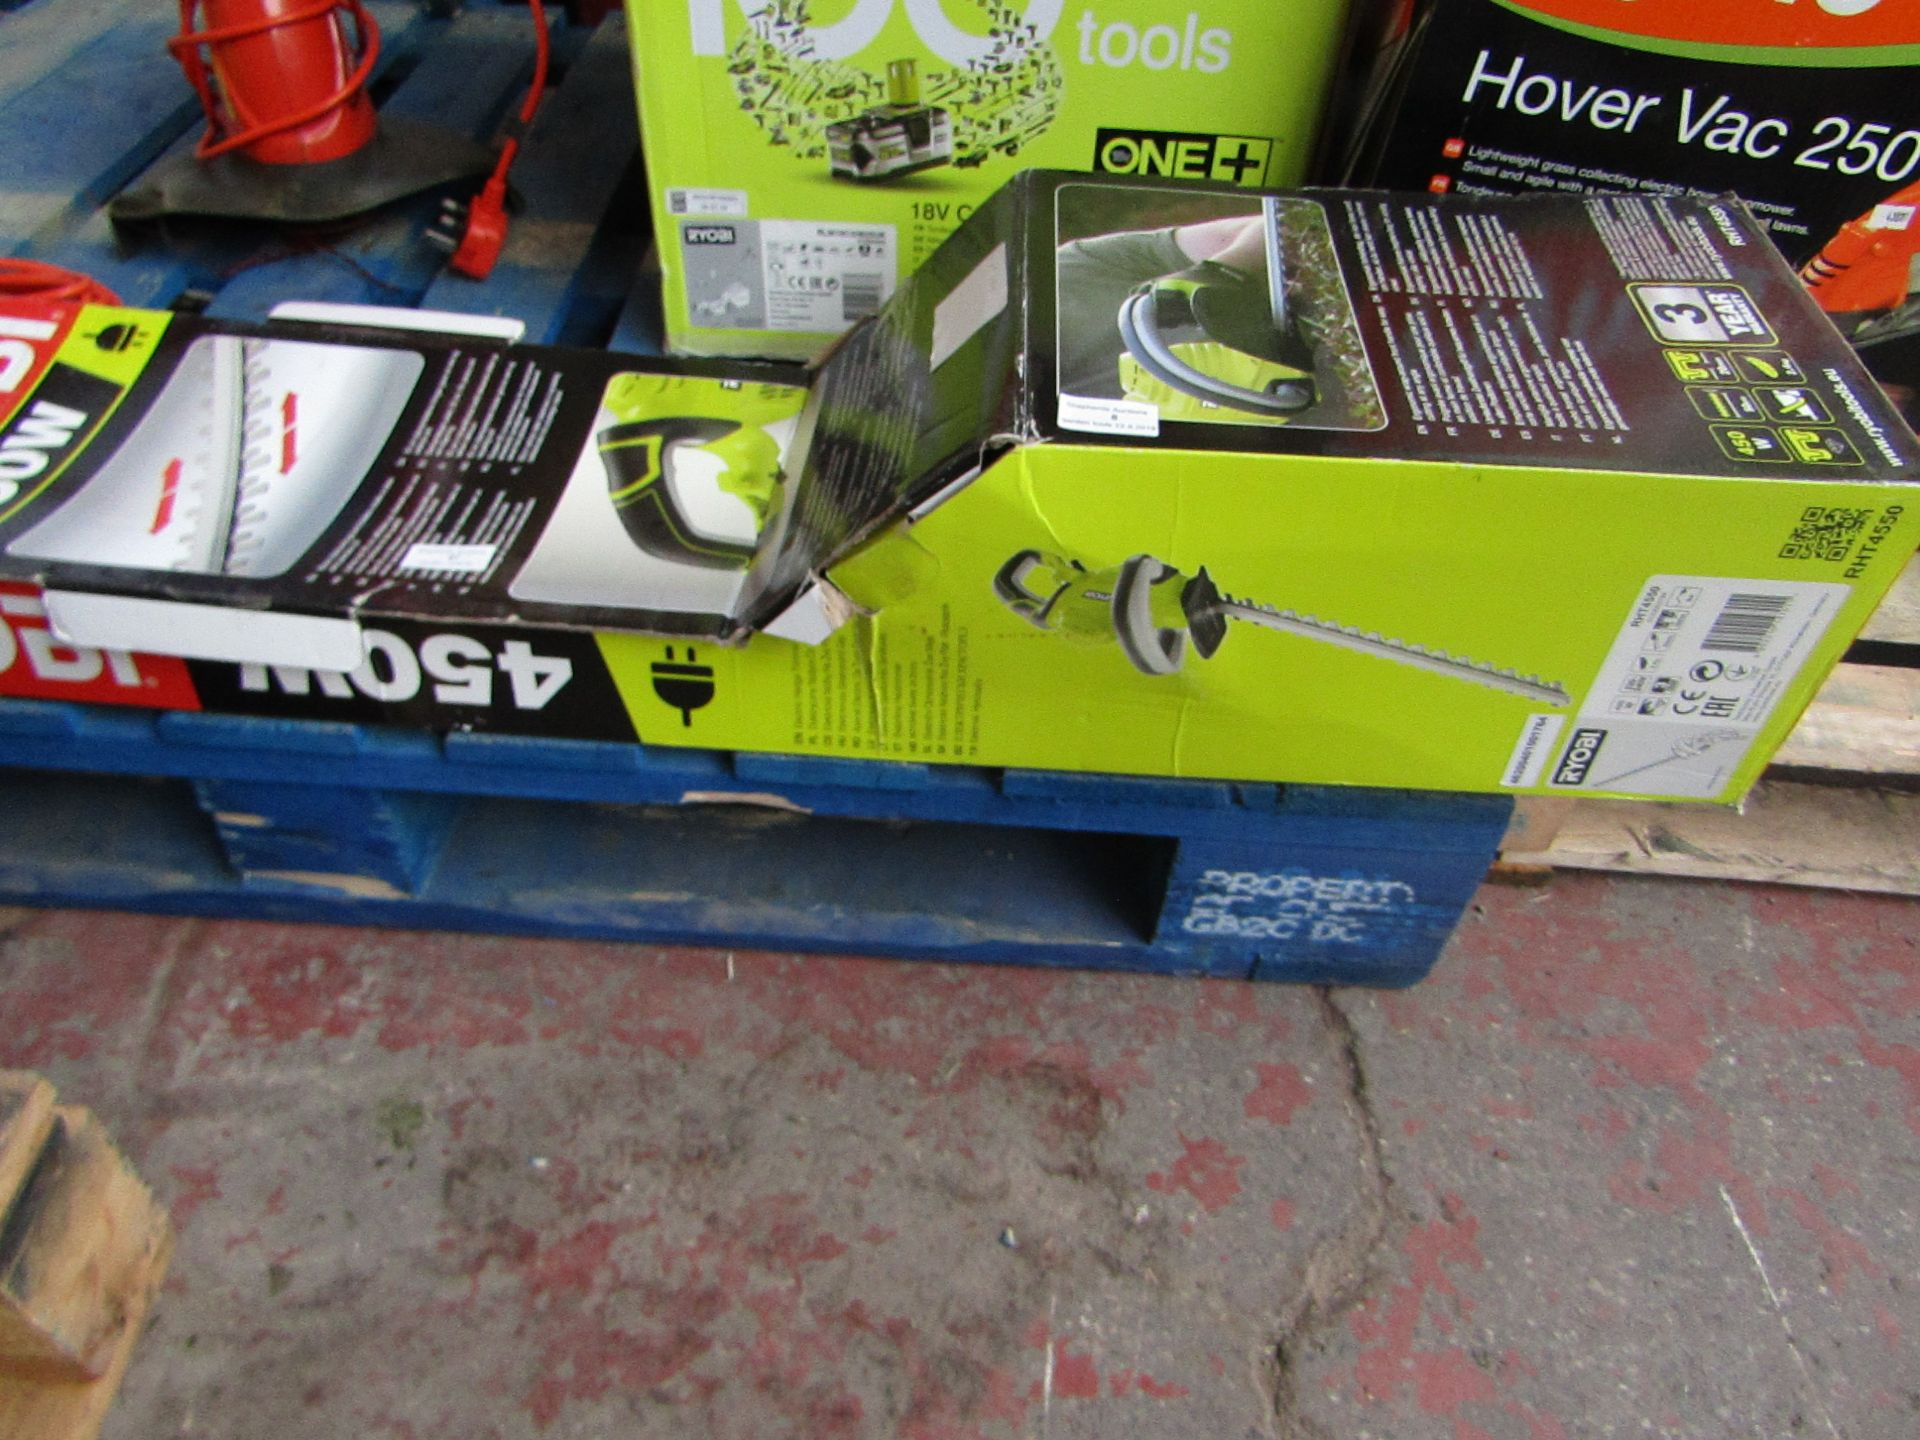 Lot 7 - Ryobi 450w Electric hedge trimmer, unable to test as the cable has been cut part way through, should